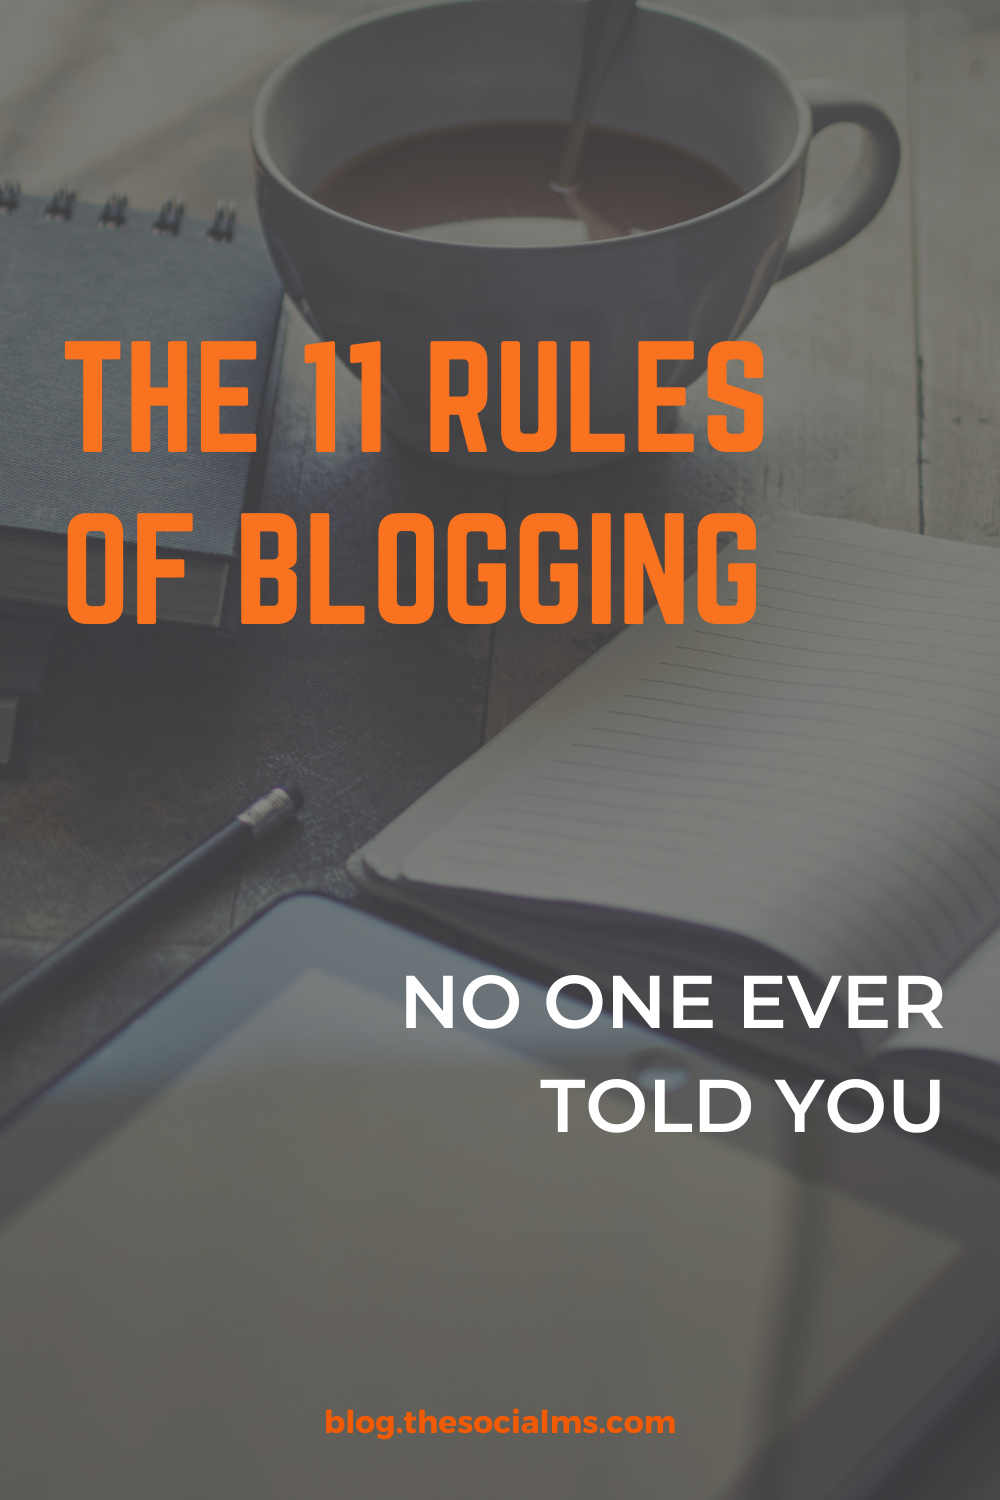 sounds so awesome once you get there. But you know: You have to work your butt off all the way! Because there are some rules of blogging that no one is openly talking about. #blogging #blogging101 #startablog #bloggingforbeginners #startablog